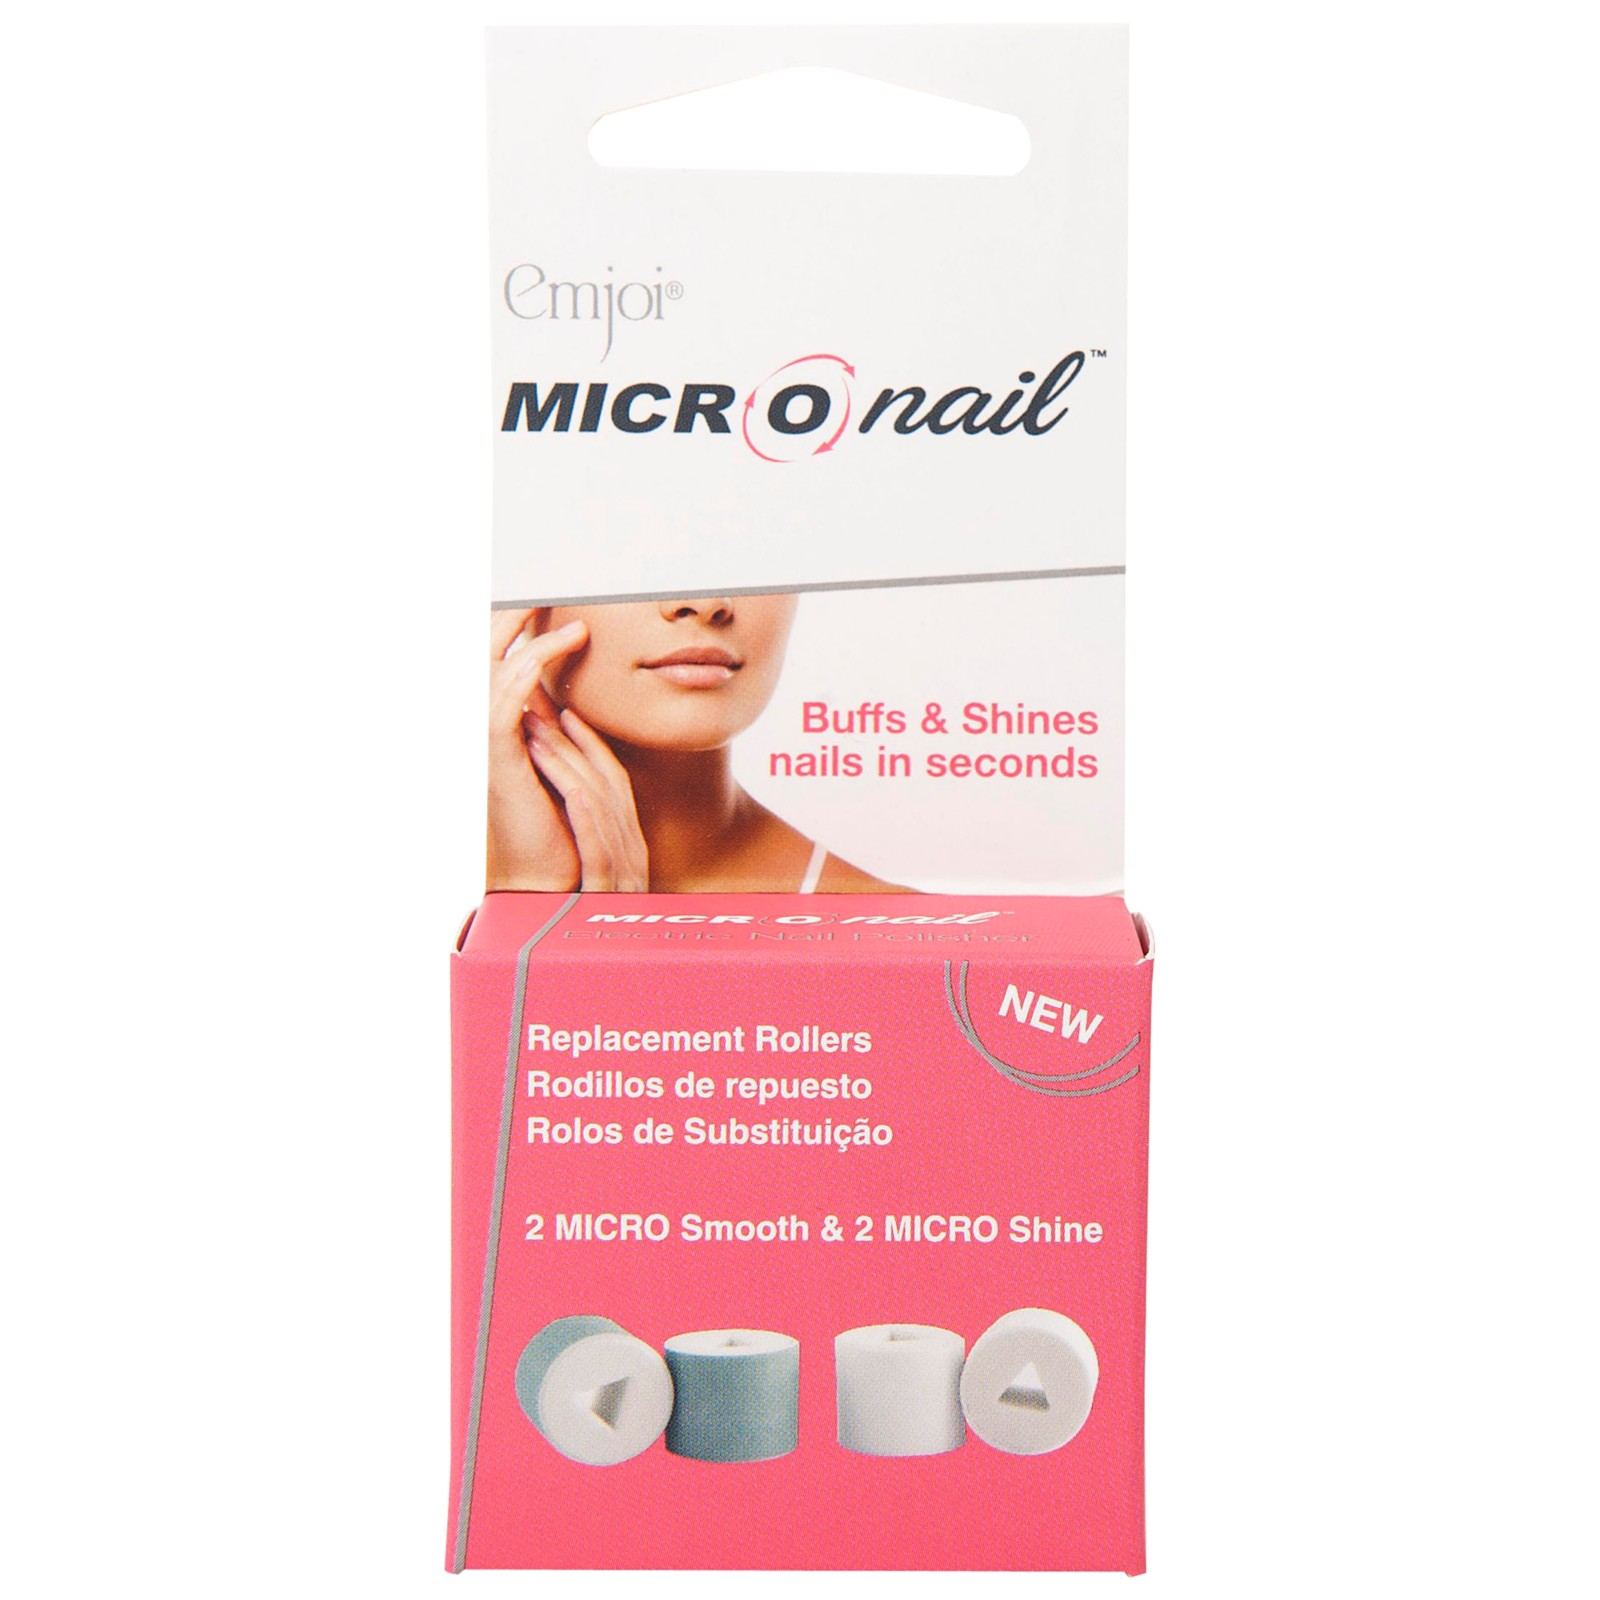 MICRO Nail Replacement Rollers